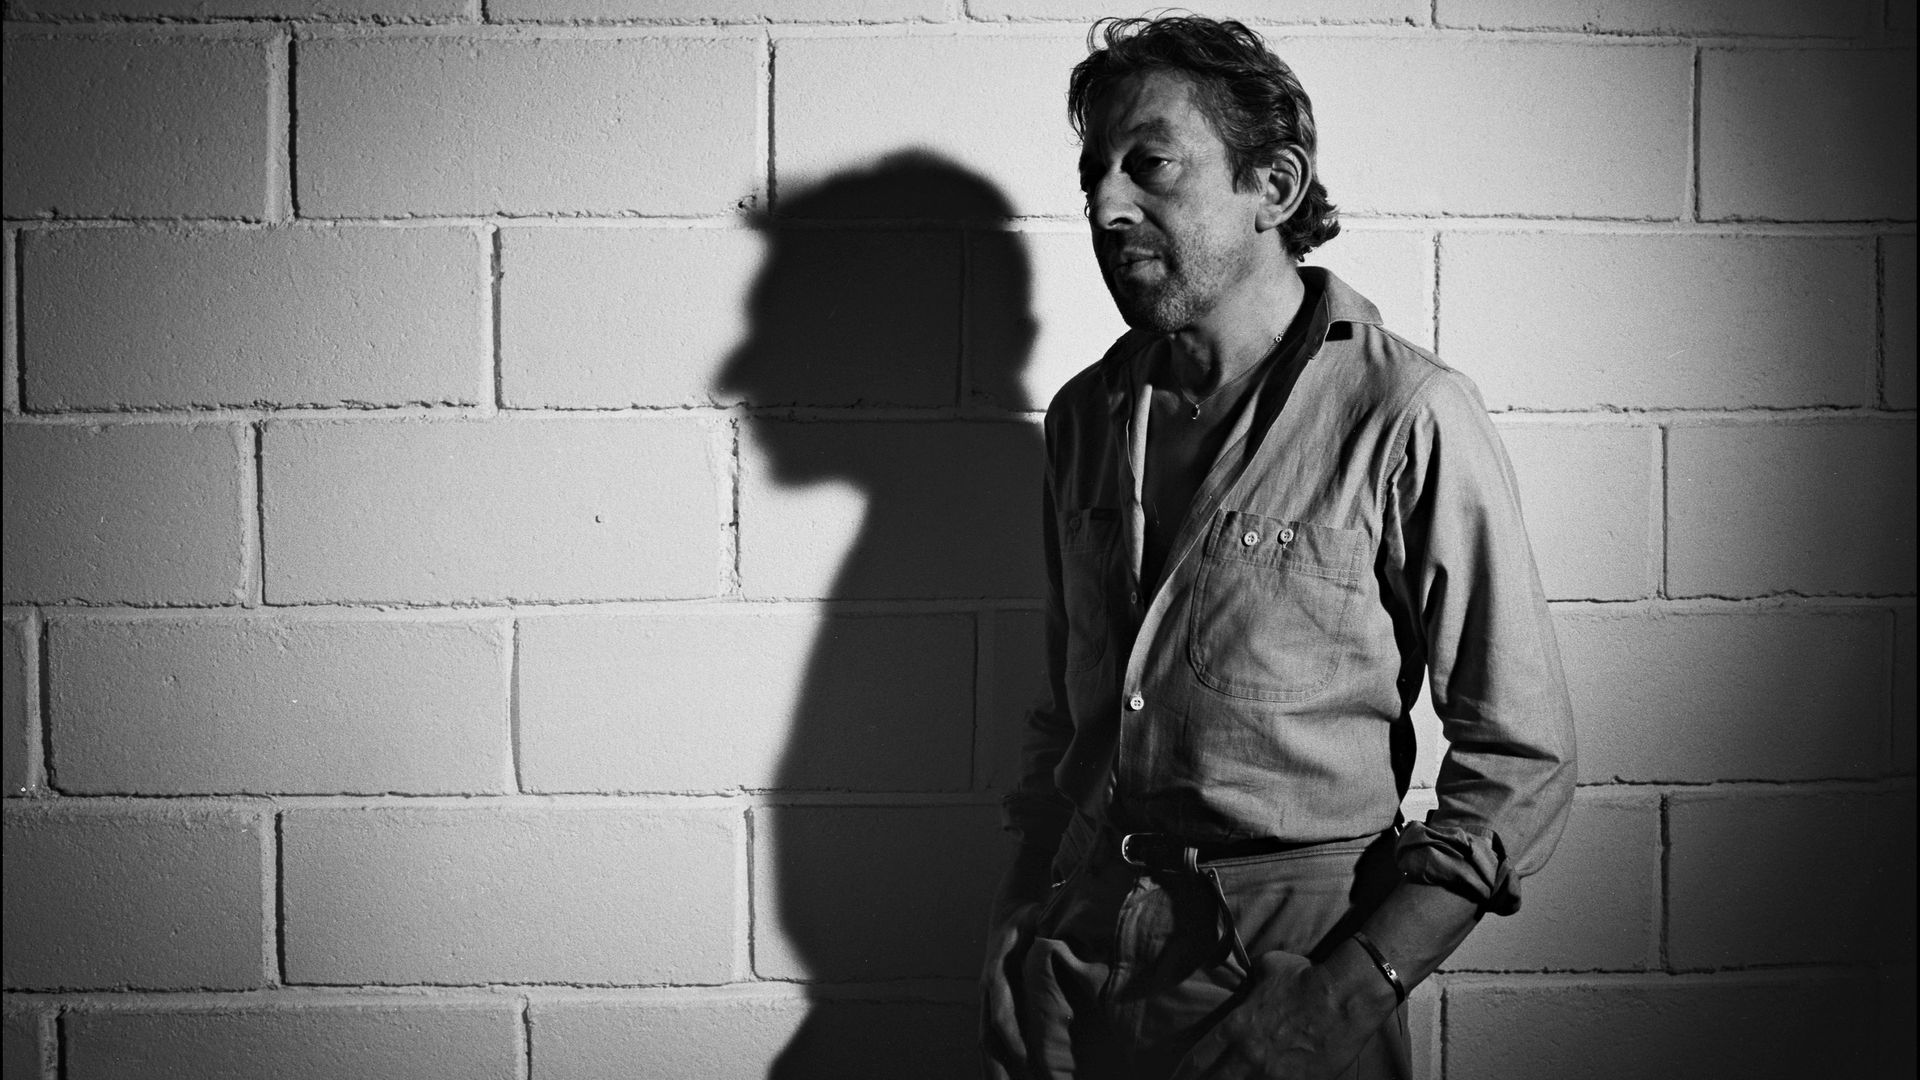 Serge Gainsbourg in 1985 - Credit: Gamma-Rapho via Getty Images